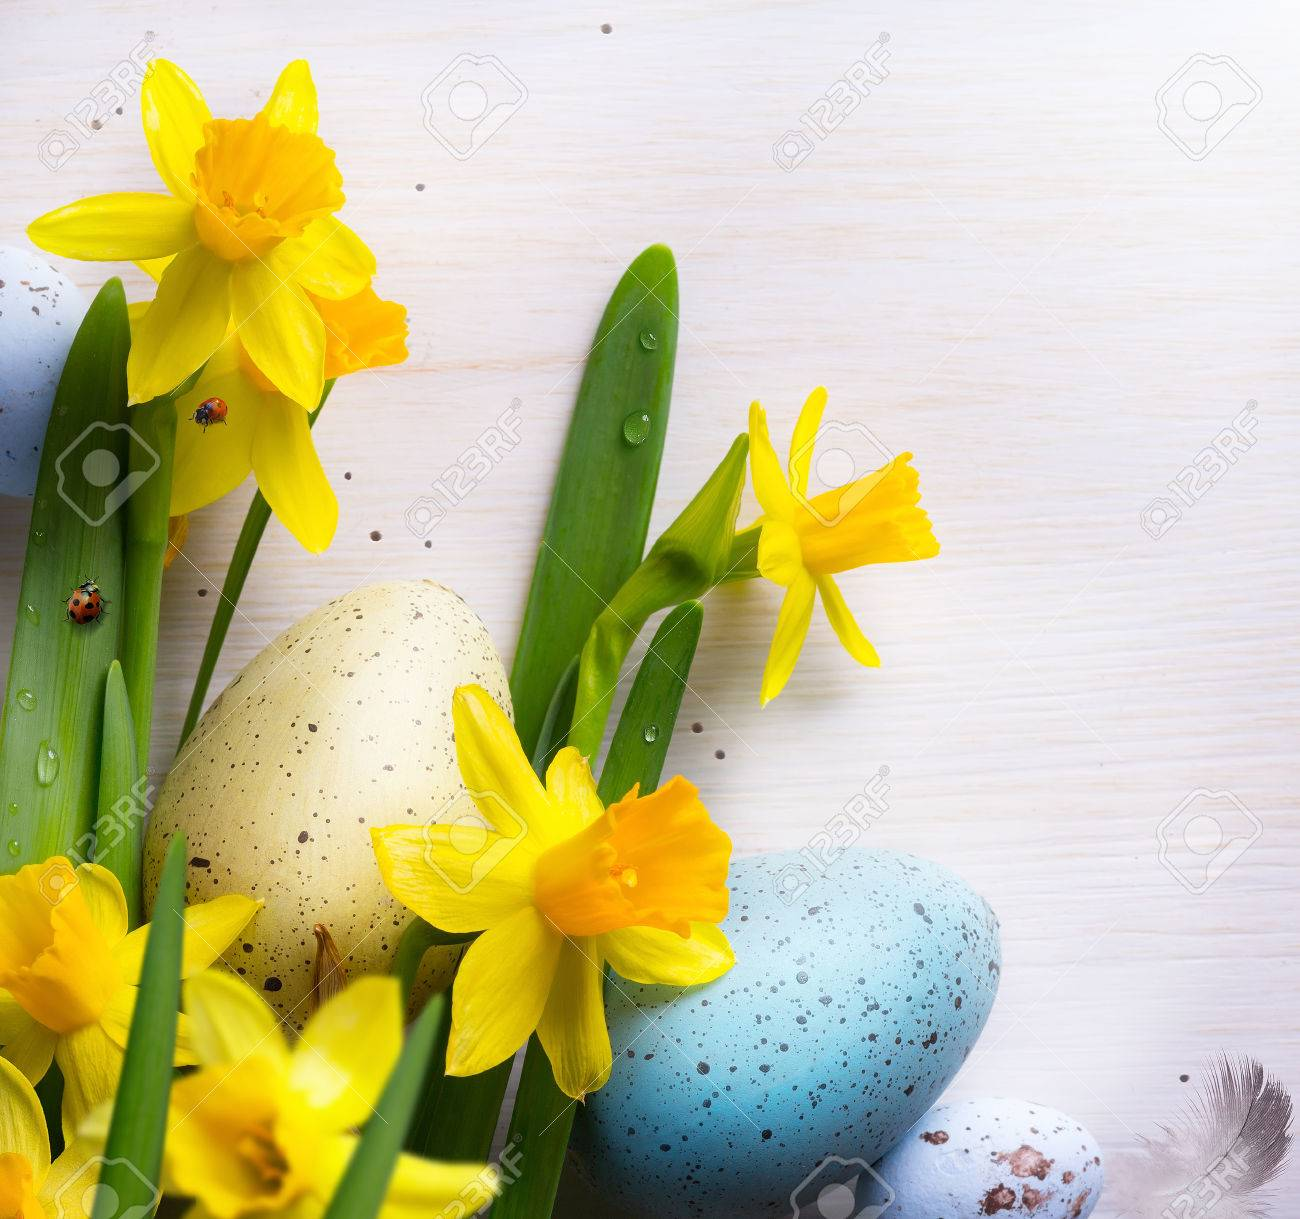 Happy easter background with easter eggs and yellow spring flowers happy easter background with easter eggs and yellow spring flowers stock photo 54142375 mightylinksfo